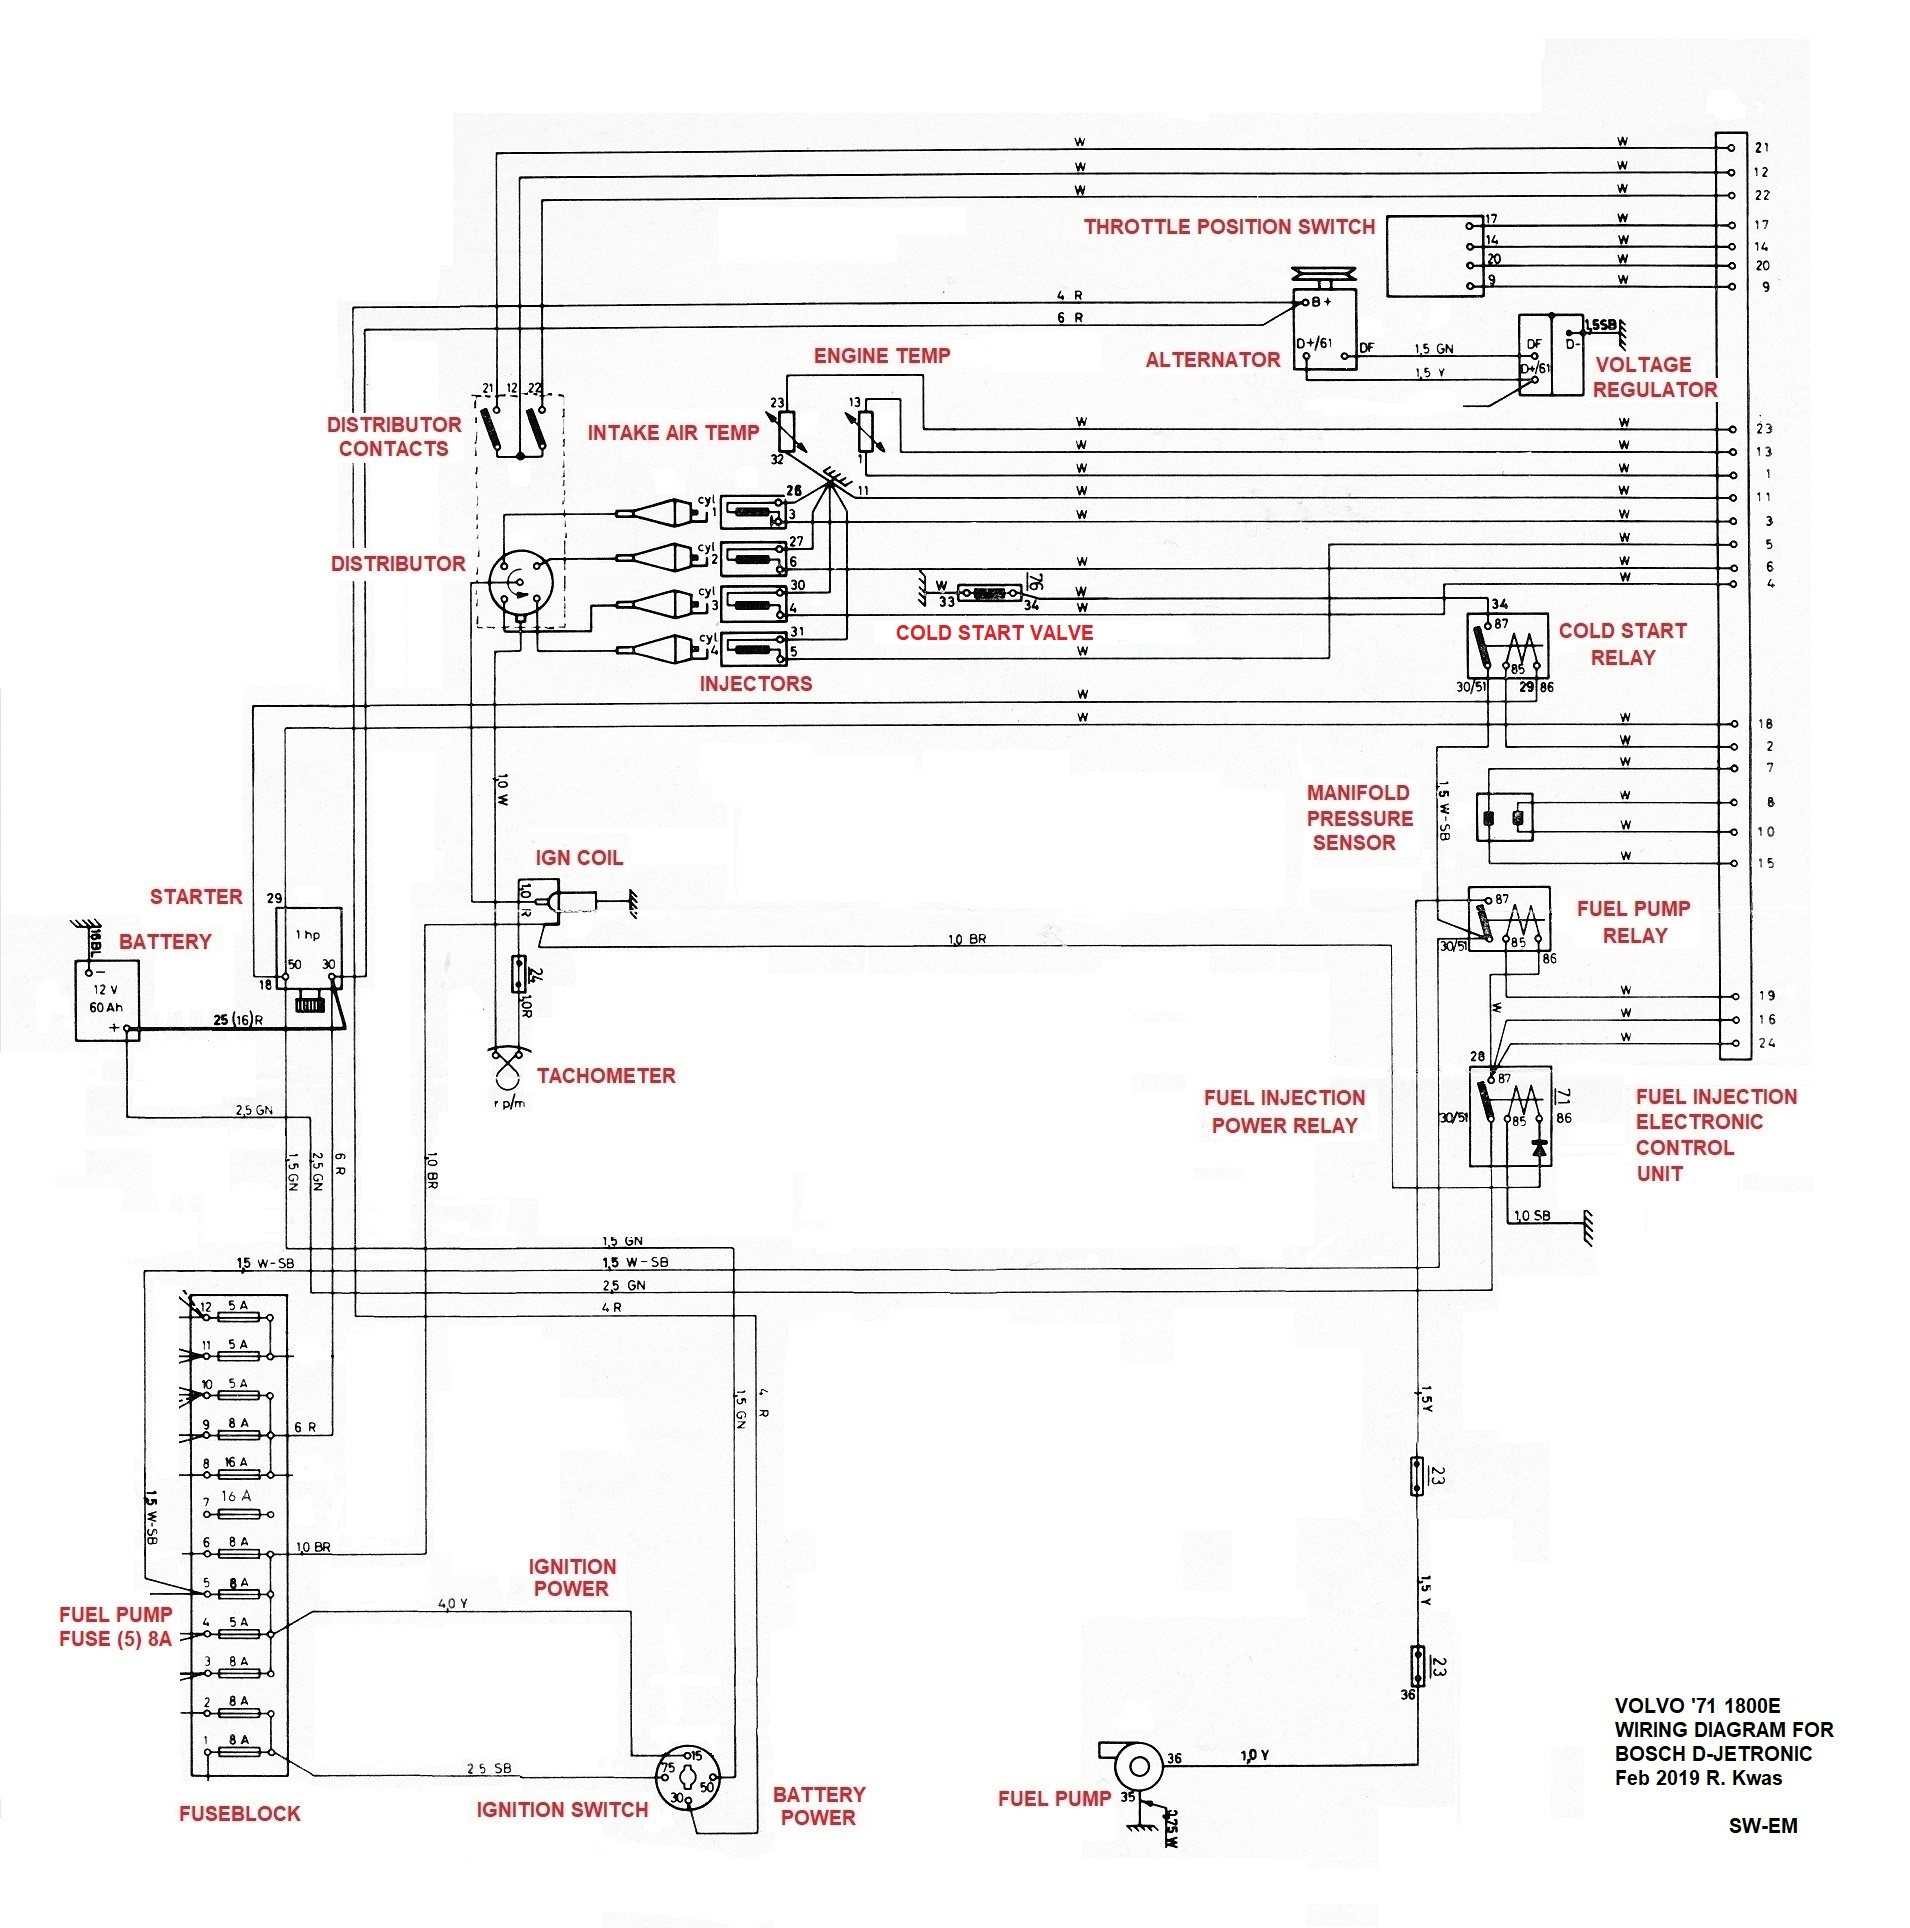 Alternator also Volvo Eswiringdiagram Gridtogowithexce File additionally Va Edelstahl Sto C Fstangen Satz Bumper Set F C Bcr furthermore Es Horn Wiring together with Image. on volvo 1800es wiring diagram